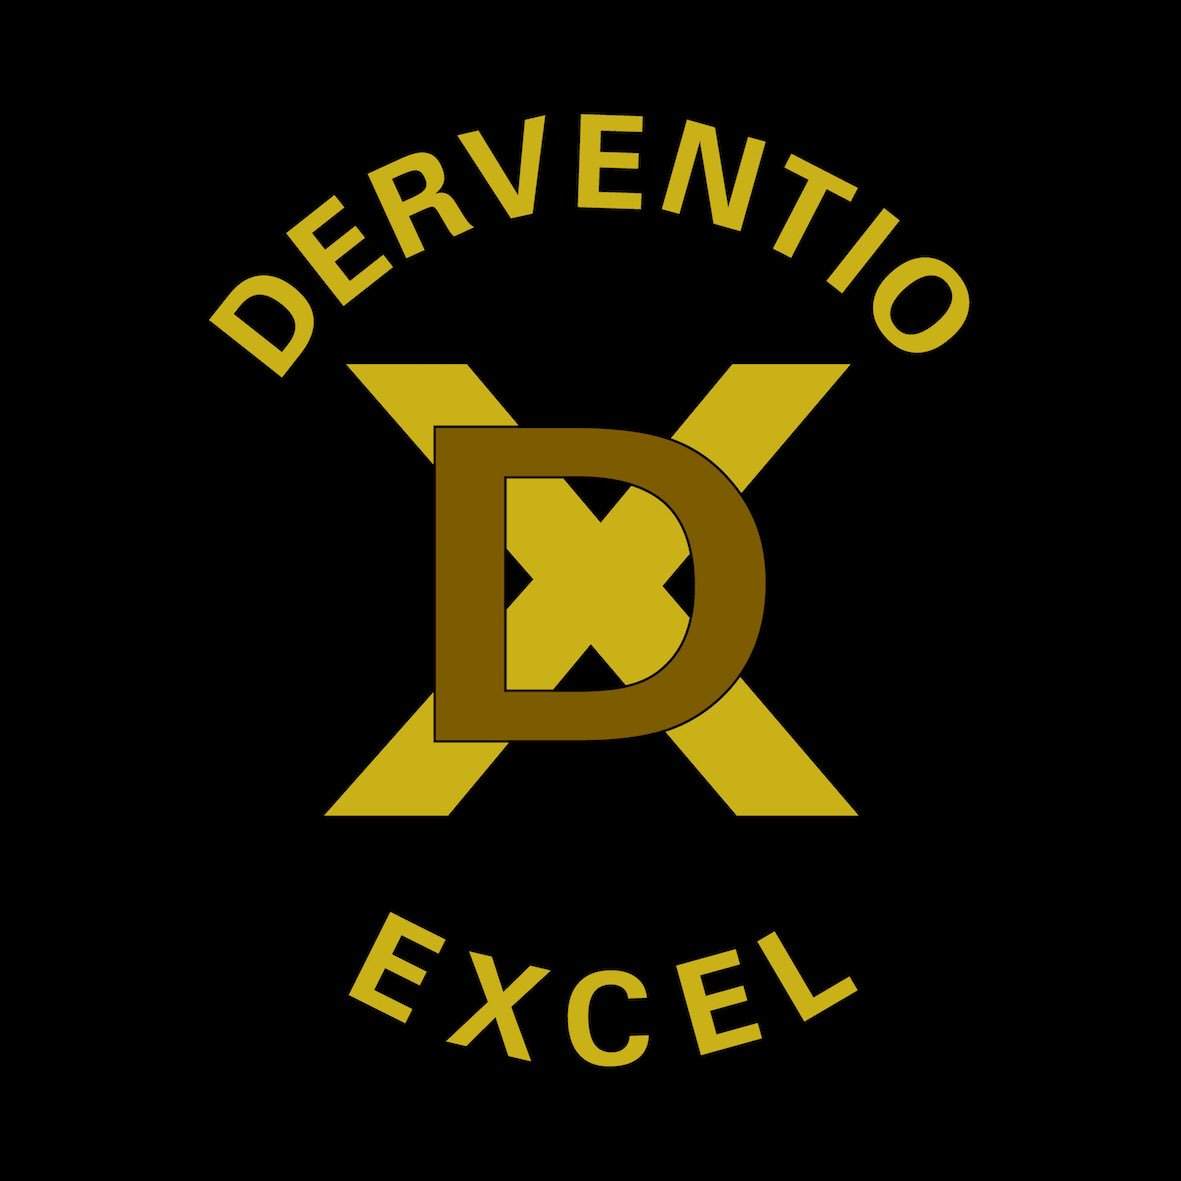 Derventio excel on twitter dx sc meet entries close tomorrow derventio excel on twitter dx sc meet entries close tomorrow always a great early season racing opportunity at arc matlock processgoals biocorpaavc